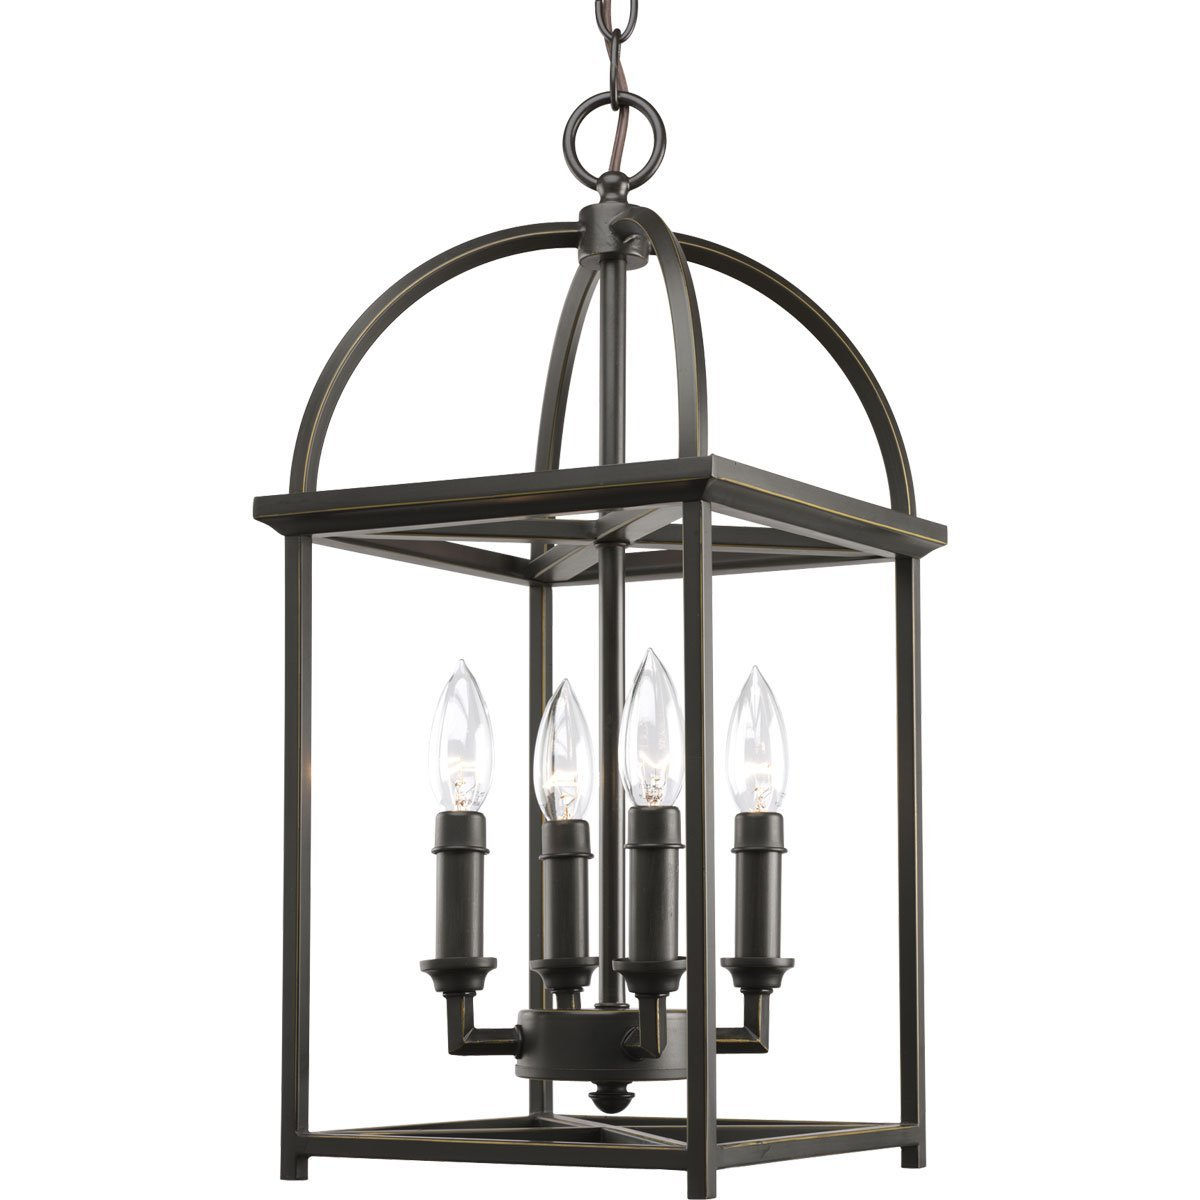 American Retro LED chandelier Black wrought iron lamp